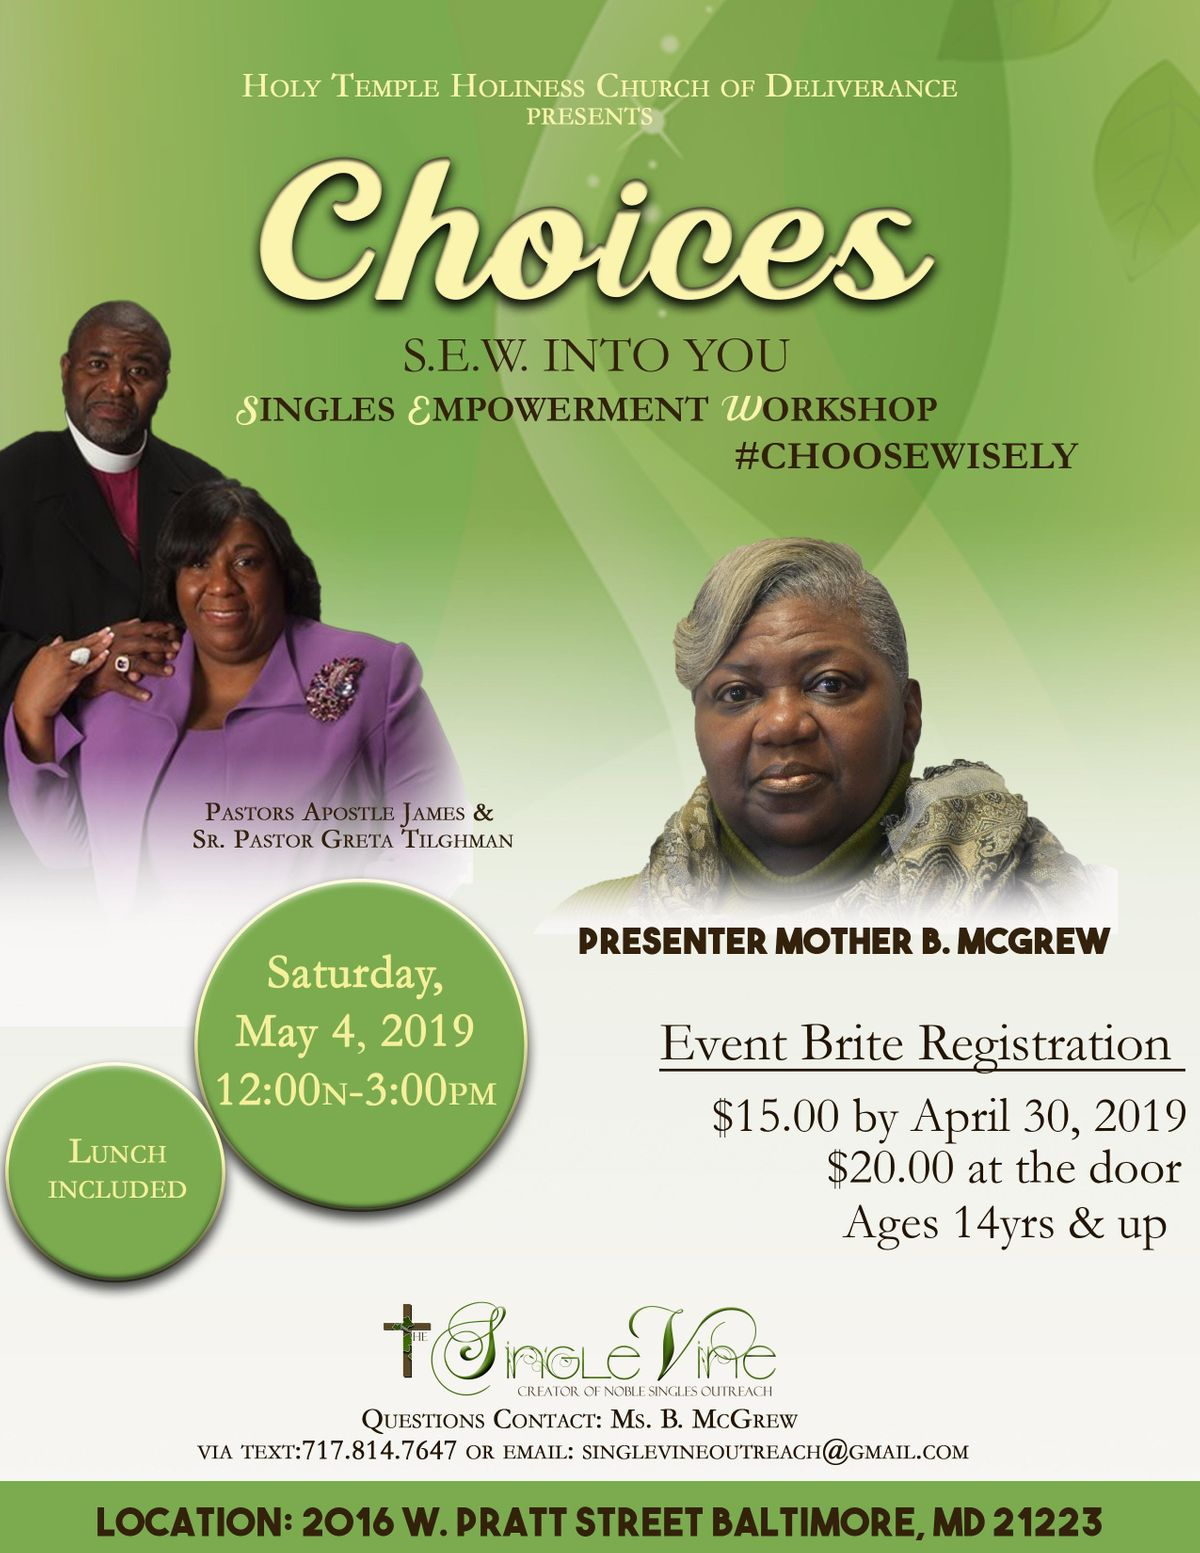 S E W  INTO U Singles Empowerment Workshop at Holy Temple Holiness